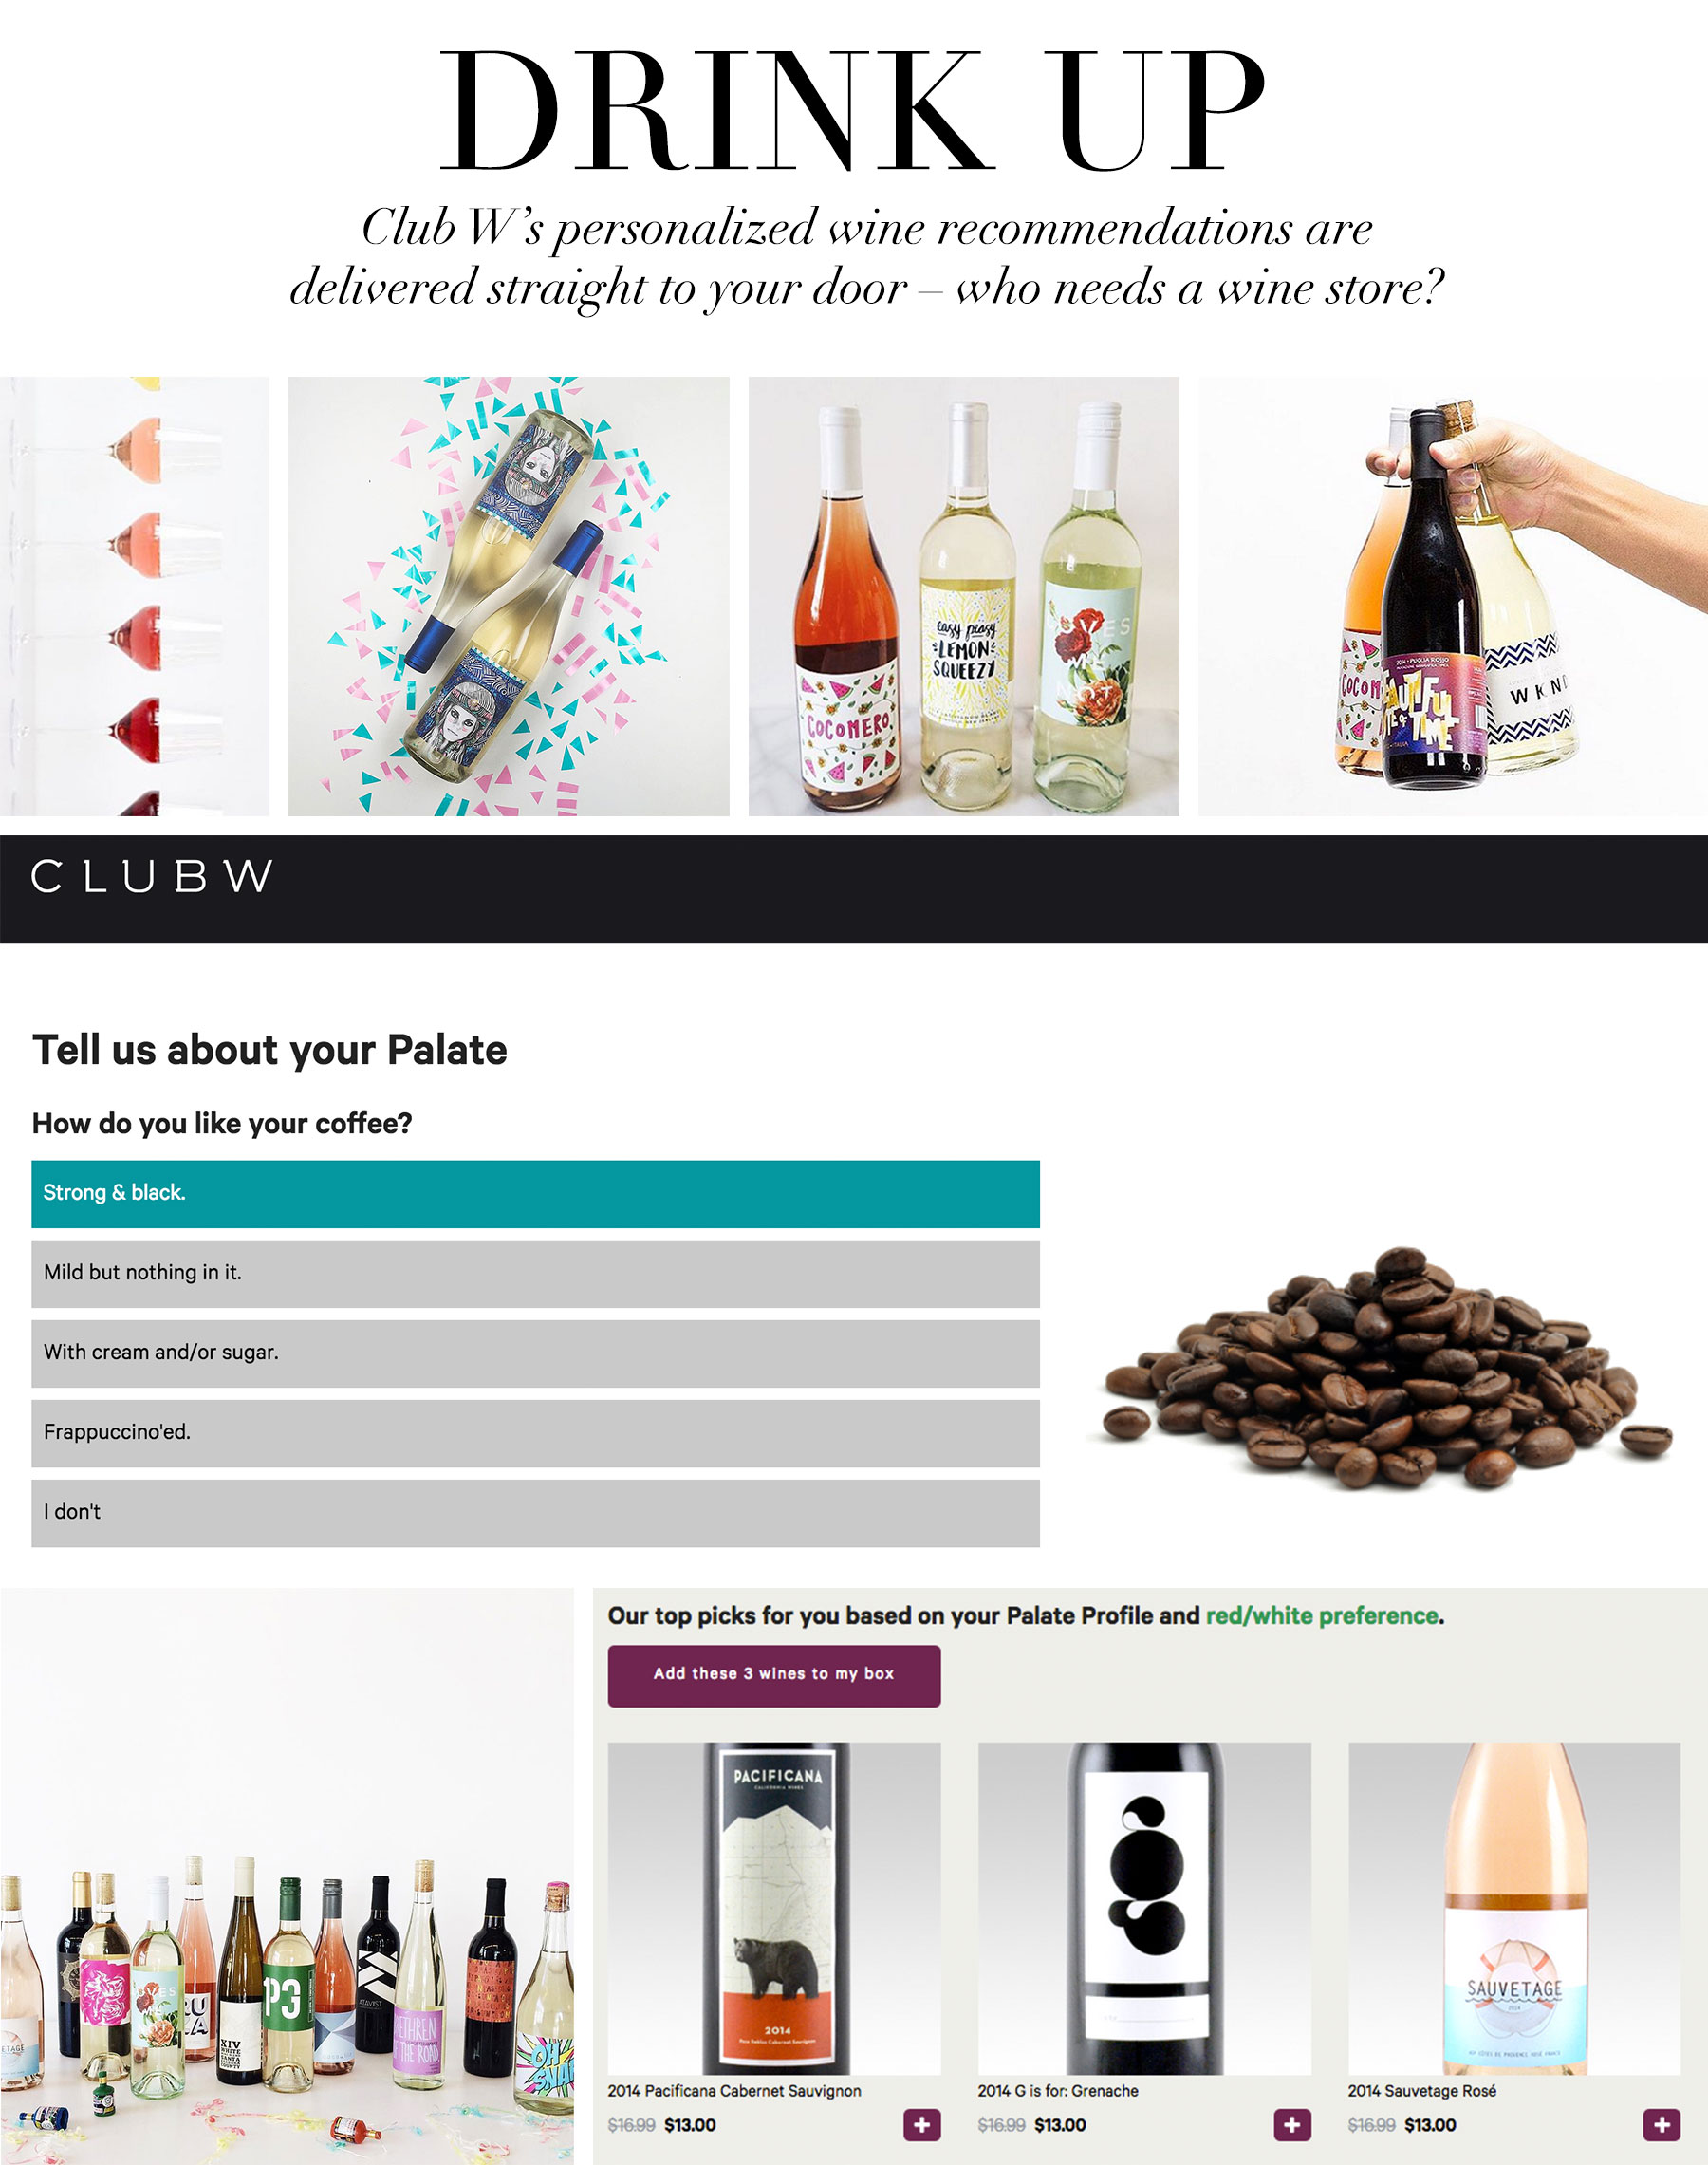 Ceci Johnson's Pampering Picks - Drink Up - Personalized wine recommendations based on your personal wine palate, and delivered to your door – who needs a wine store?